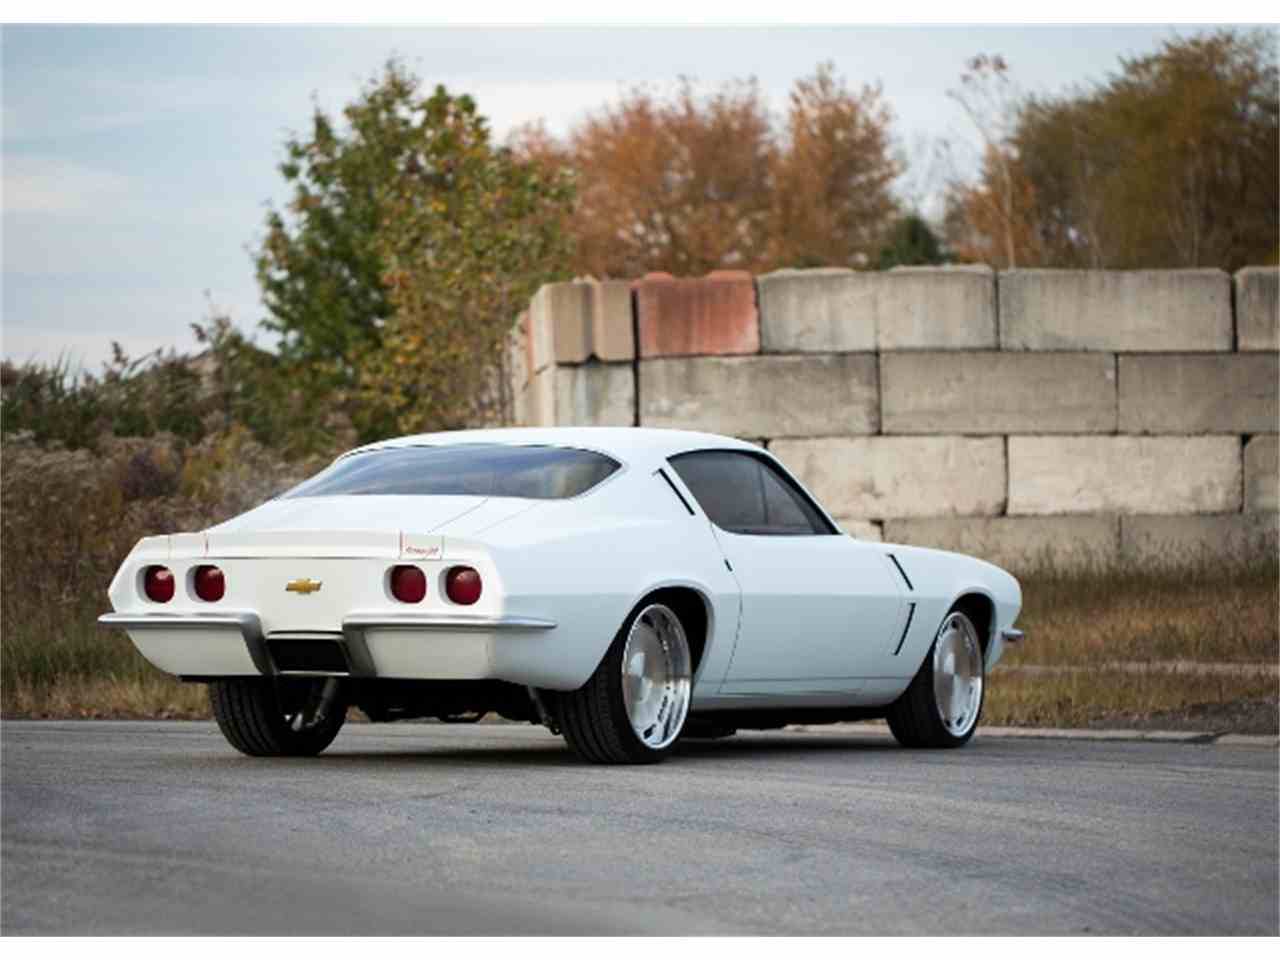 Large Picture of 1970 Camaro located in Elyria Ohio - $99,900.00 Offered by a Private Seller - GGNI